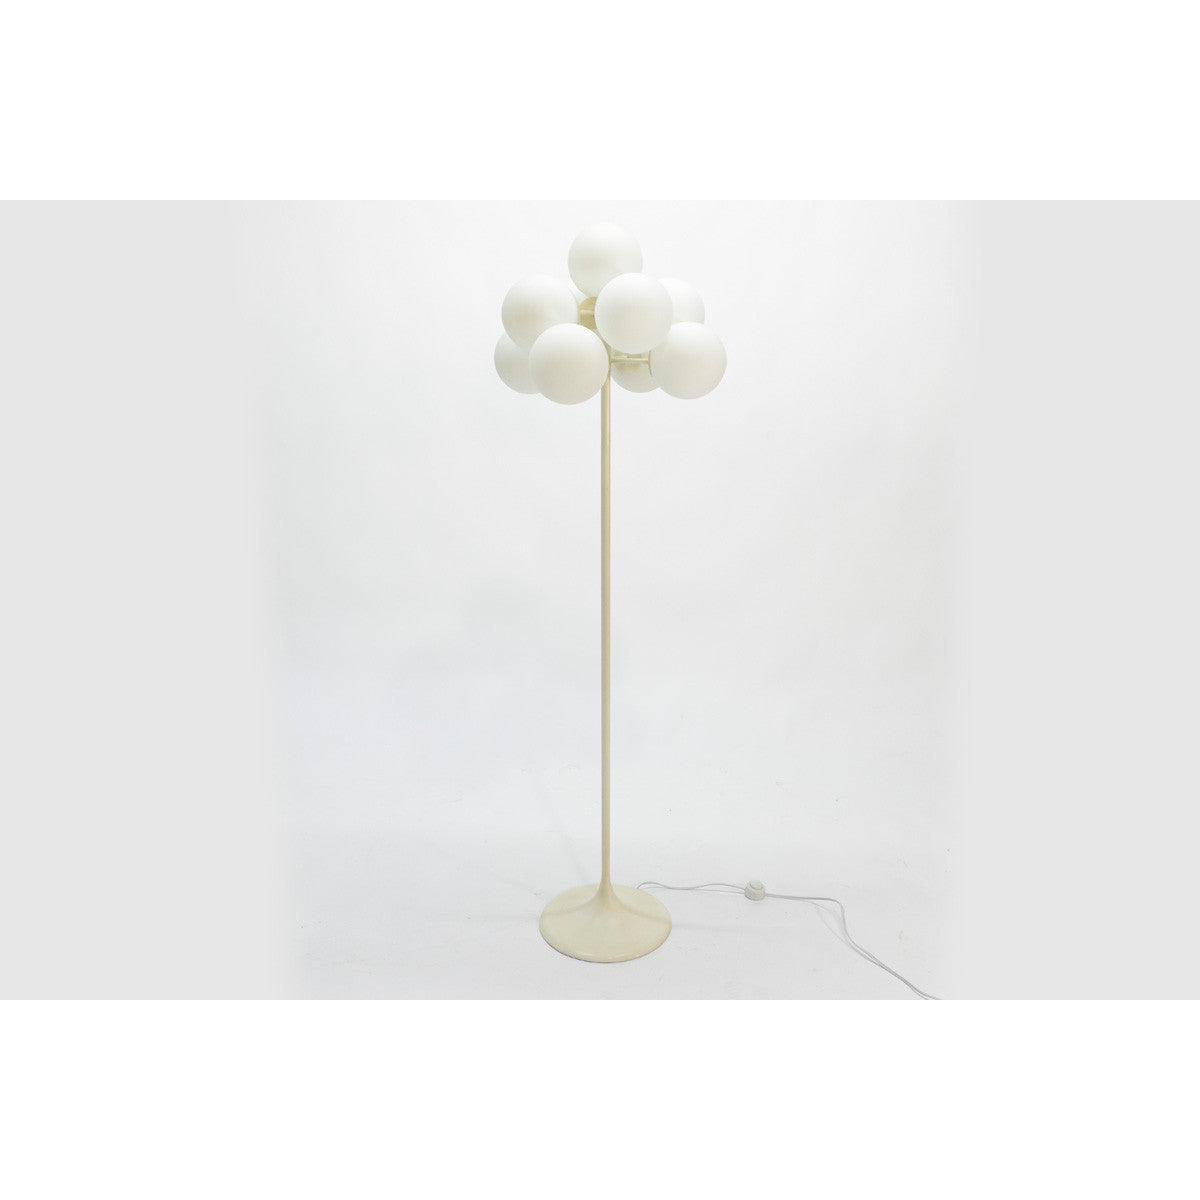 ... Tulip Floor Lamp With Frosted Globes By Temde Leuchten ...